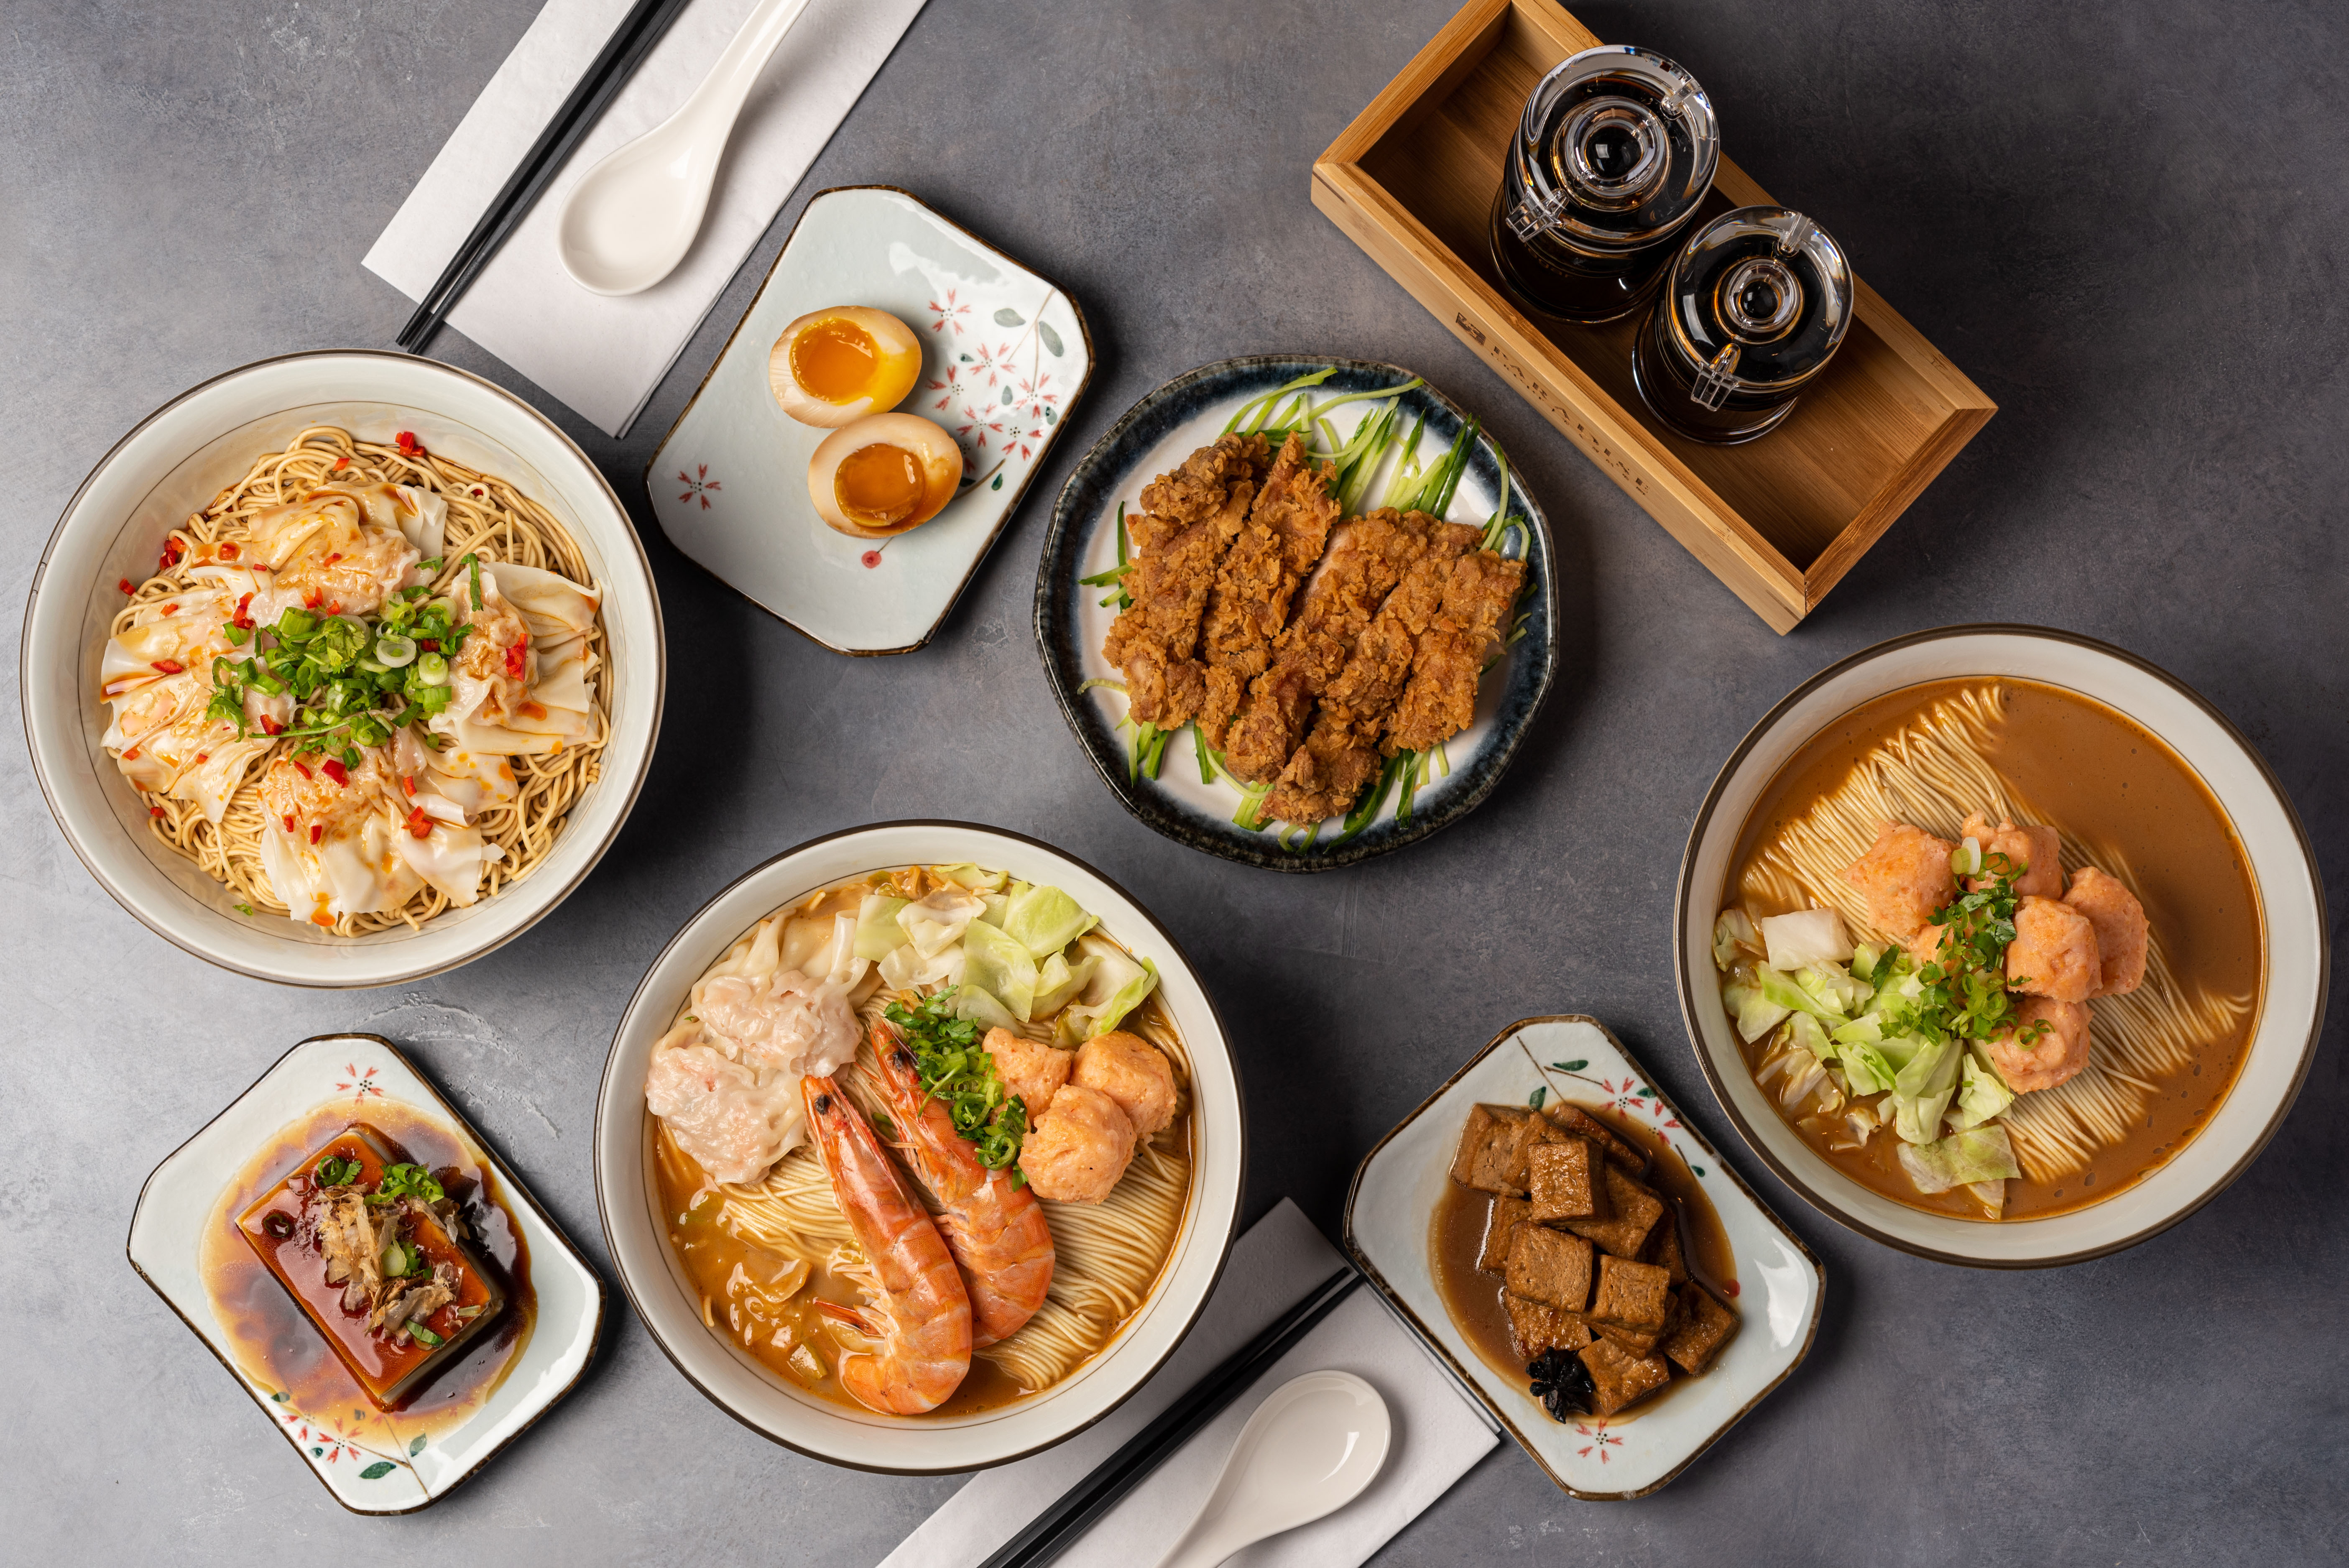 An overhead shot of a table filled with Japanese food, including ramen.